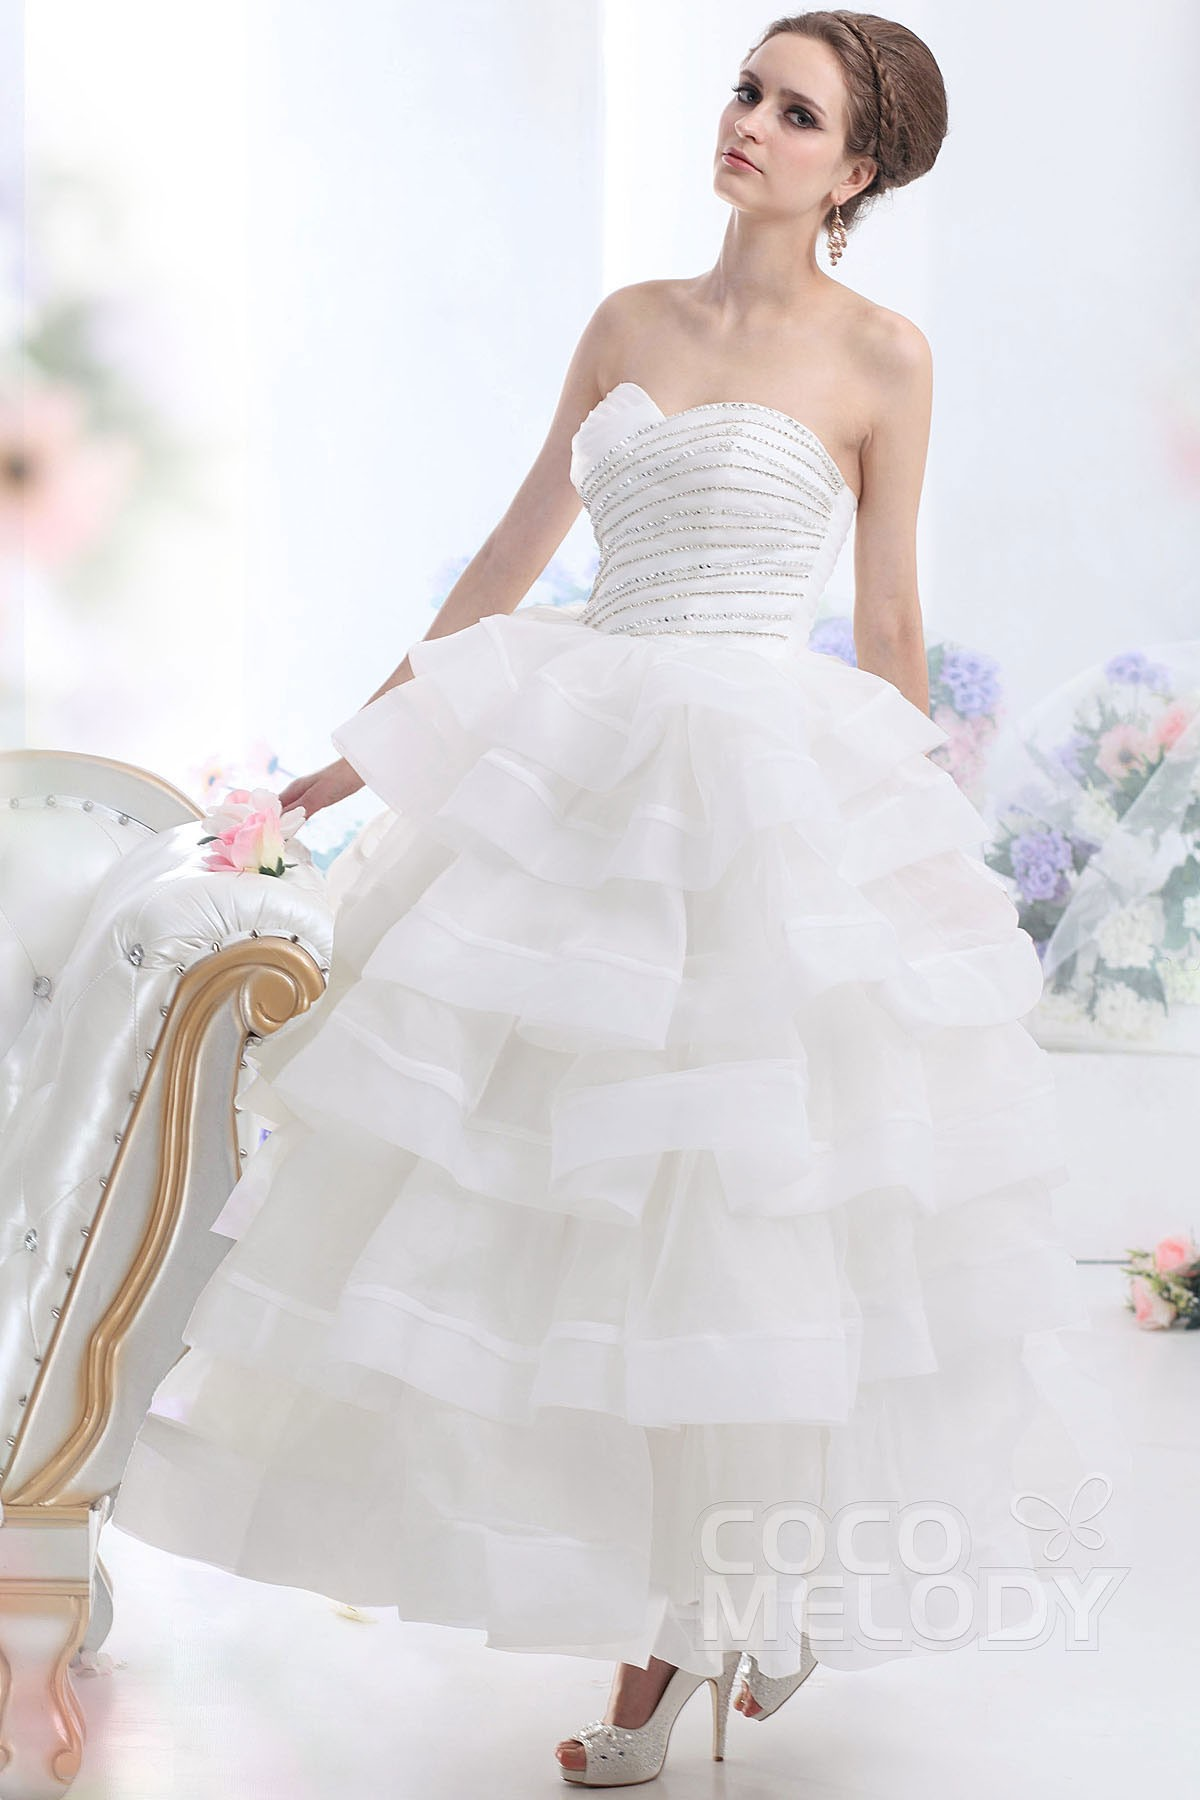 Ball Gown Ankle Length Organza Wedding Dress CWUA13001 | Cocomelody